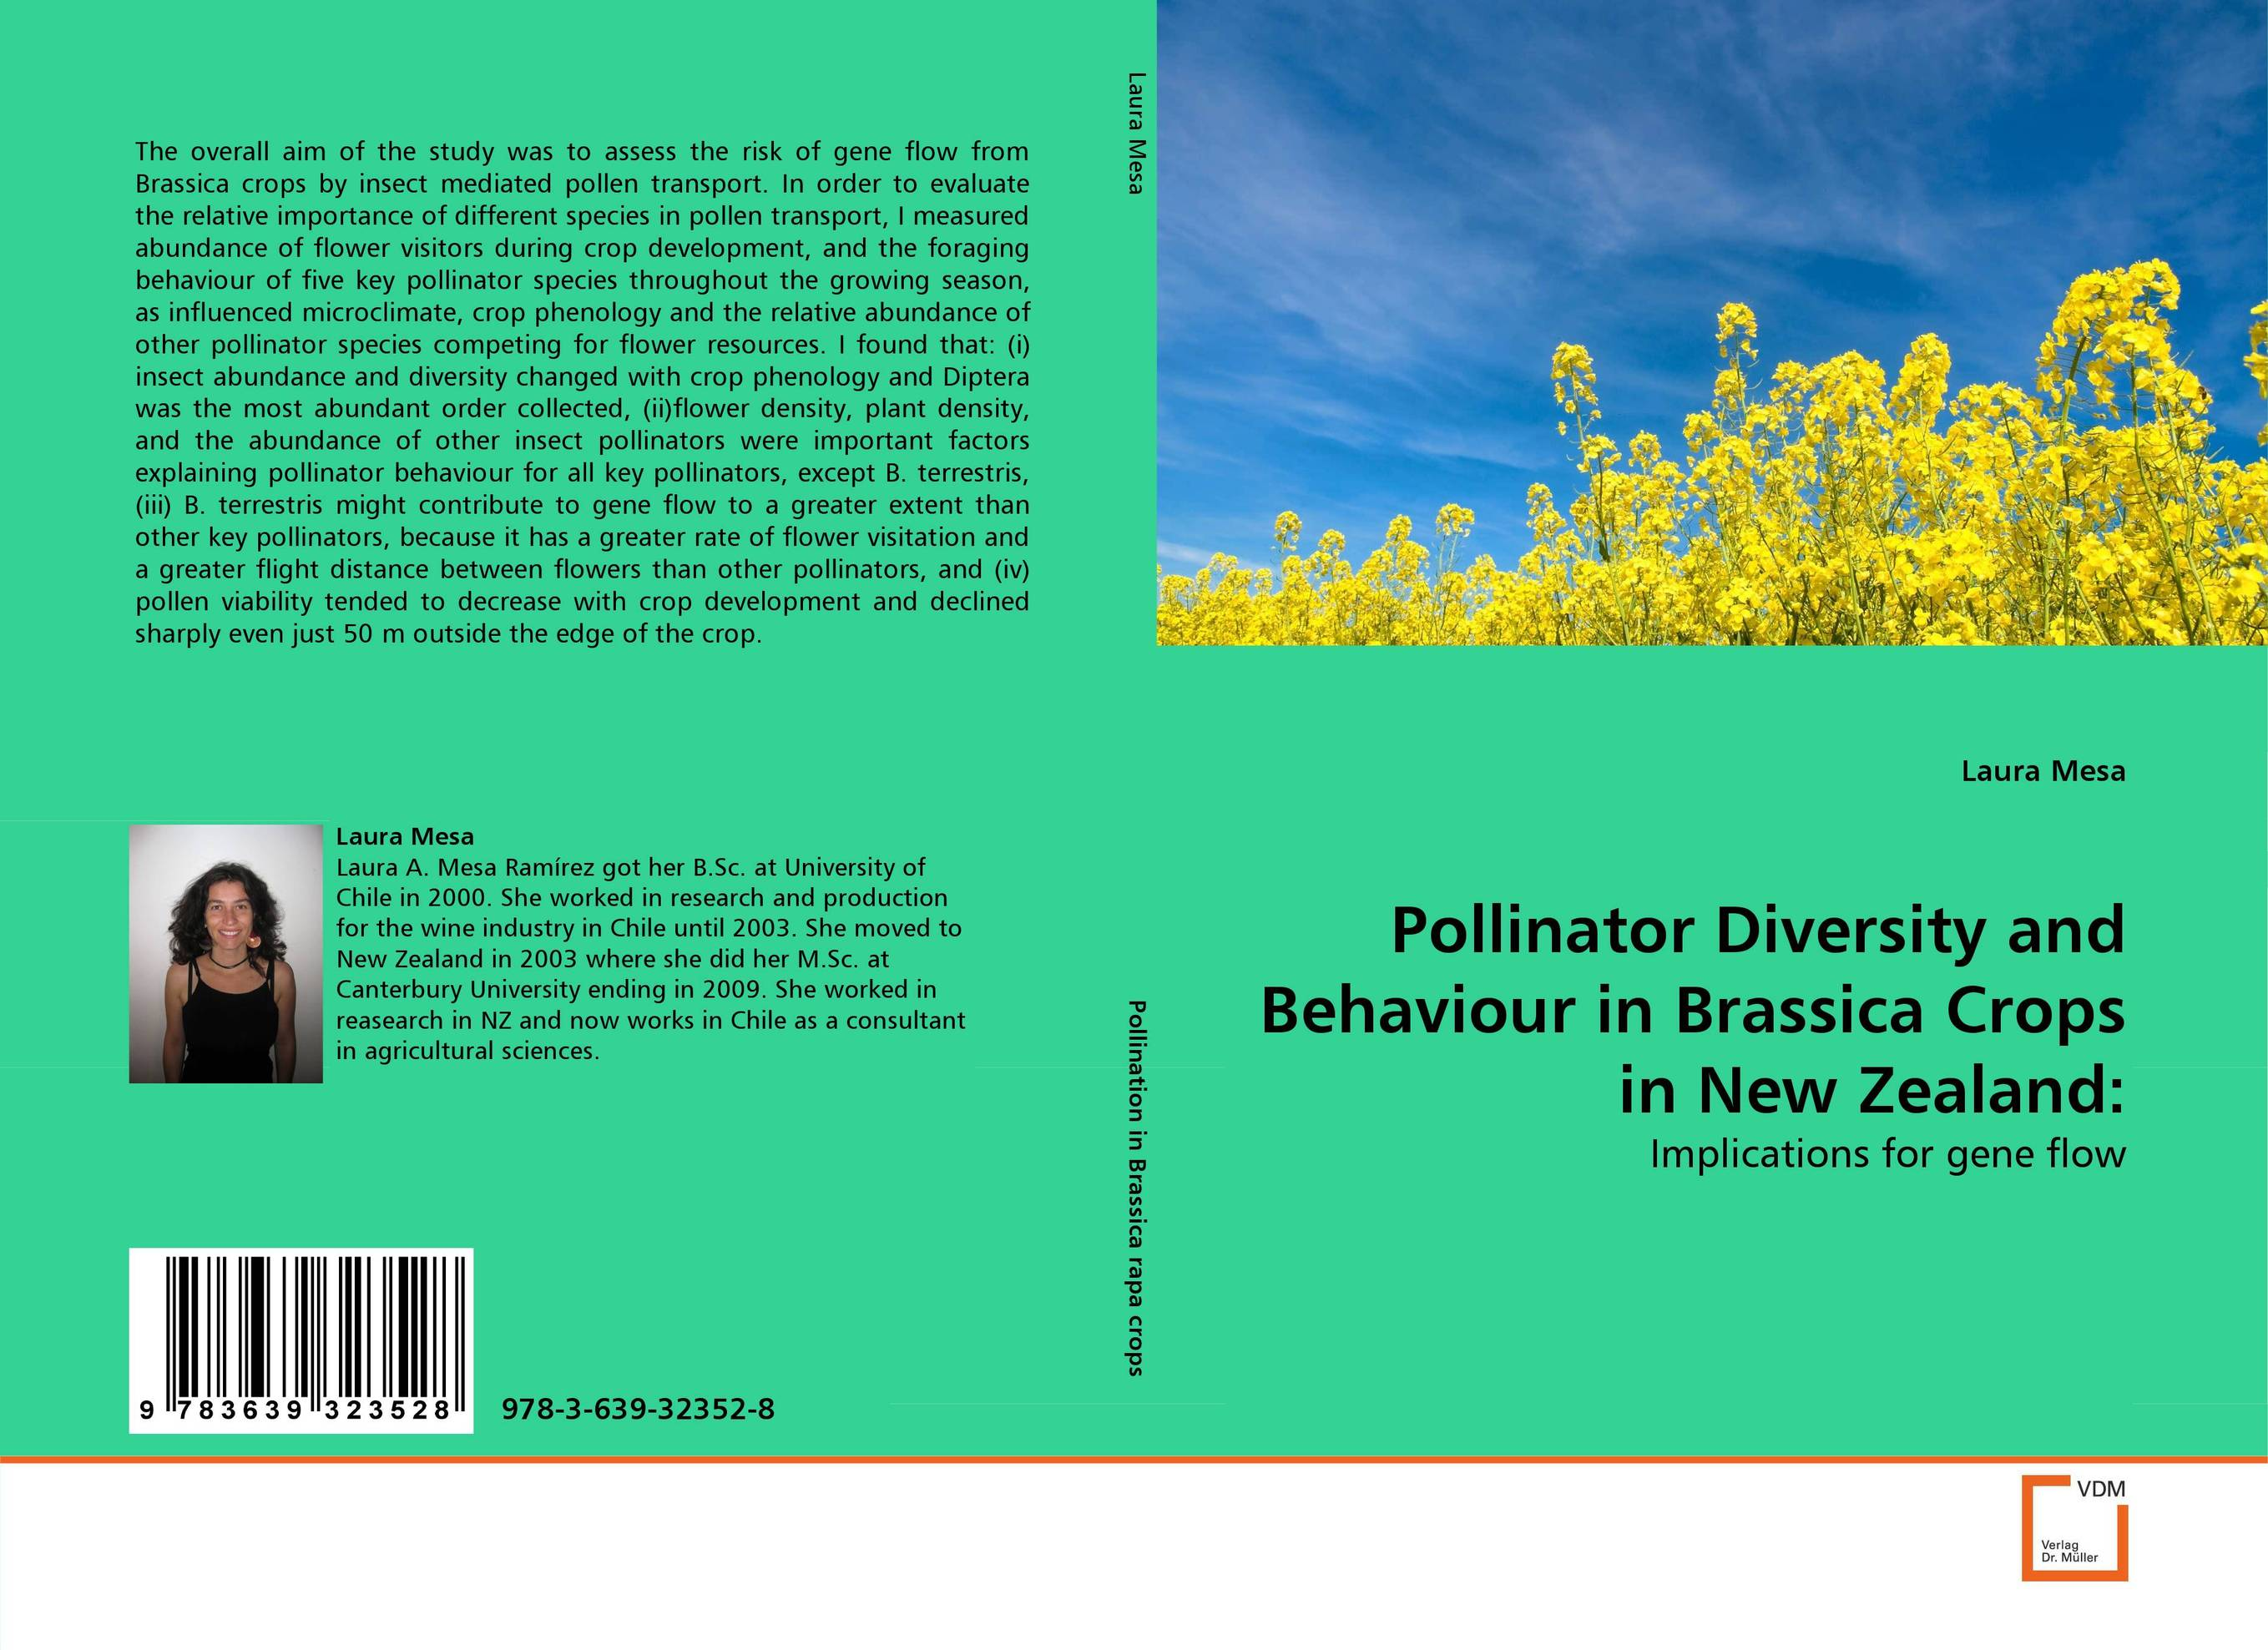 Pollinator Diversity and Behaviour in Brassica Crops in New Zealand: effects of grazing on insect pollinator diversity and abundance